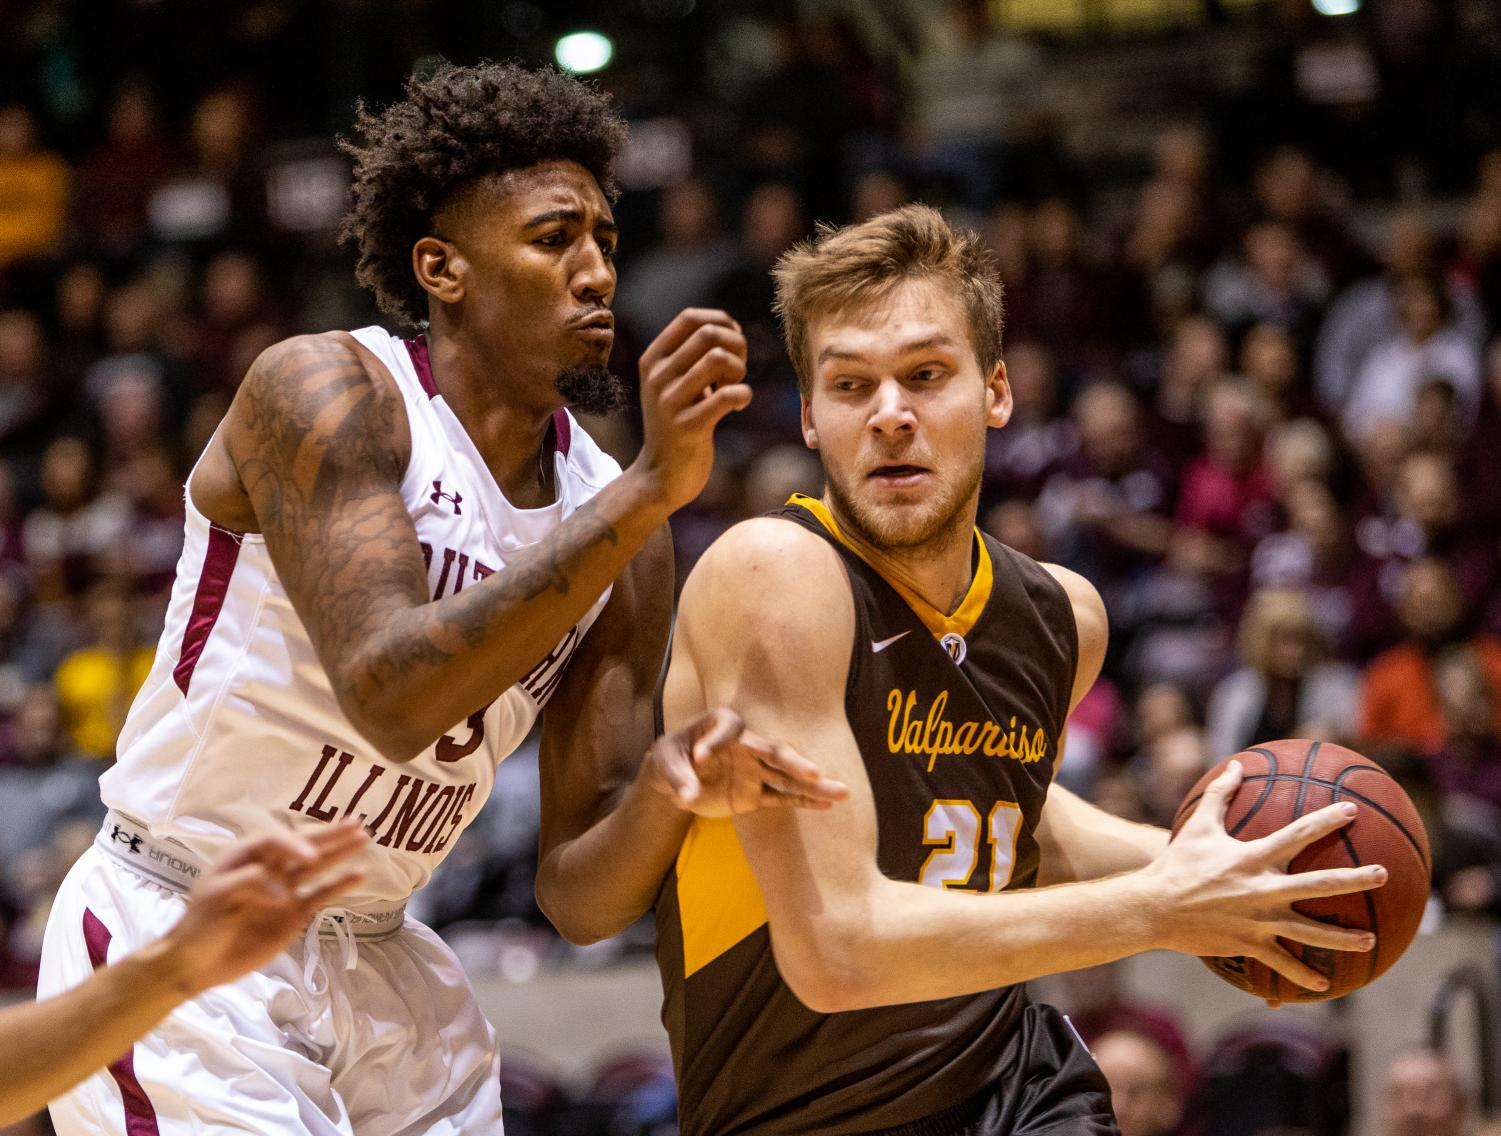 Senior center Kavion Pippen defends the ball, on Saturday, Jan 12, 2019, during the Saluki's 61-65 loss against the Valparaiso Crusaders at the SIU arena.